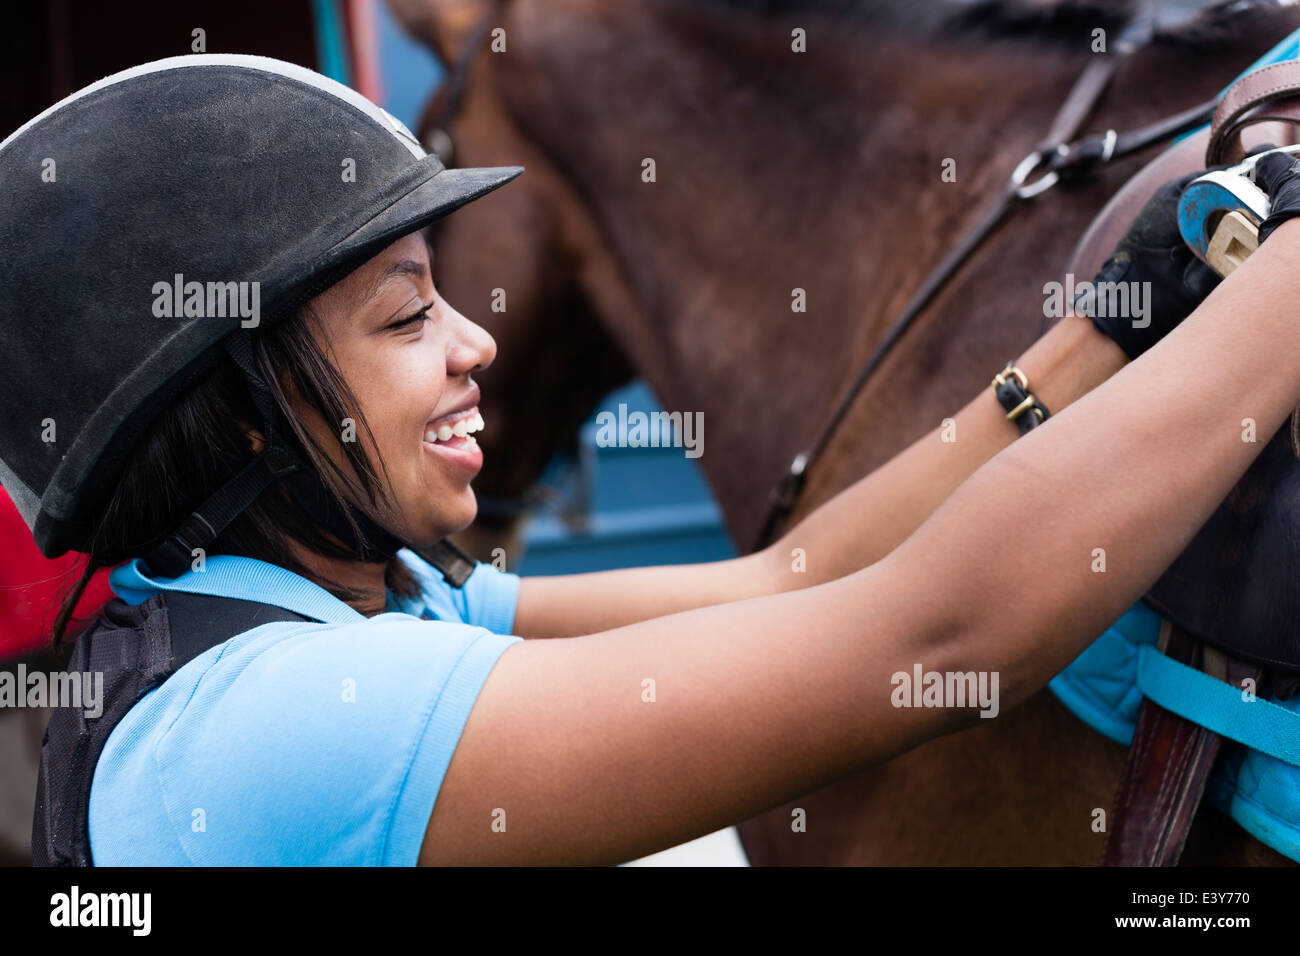 Close up of young woman putting saddle on horse - Stock Image